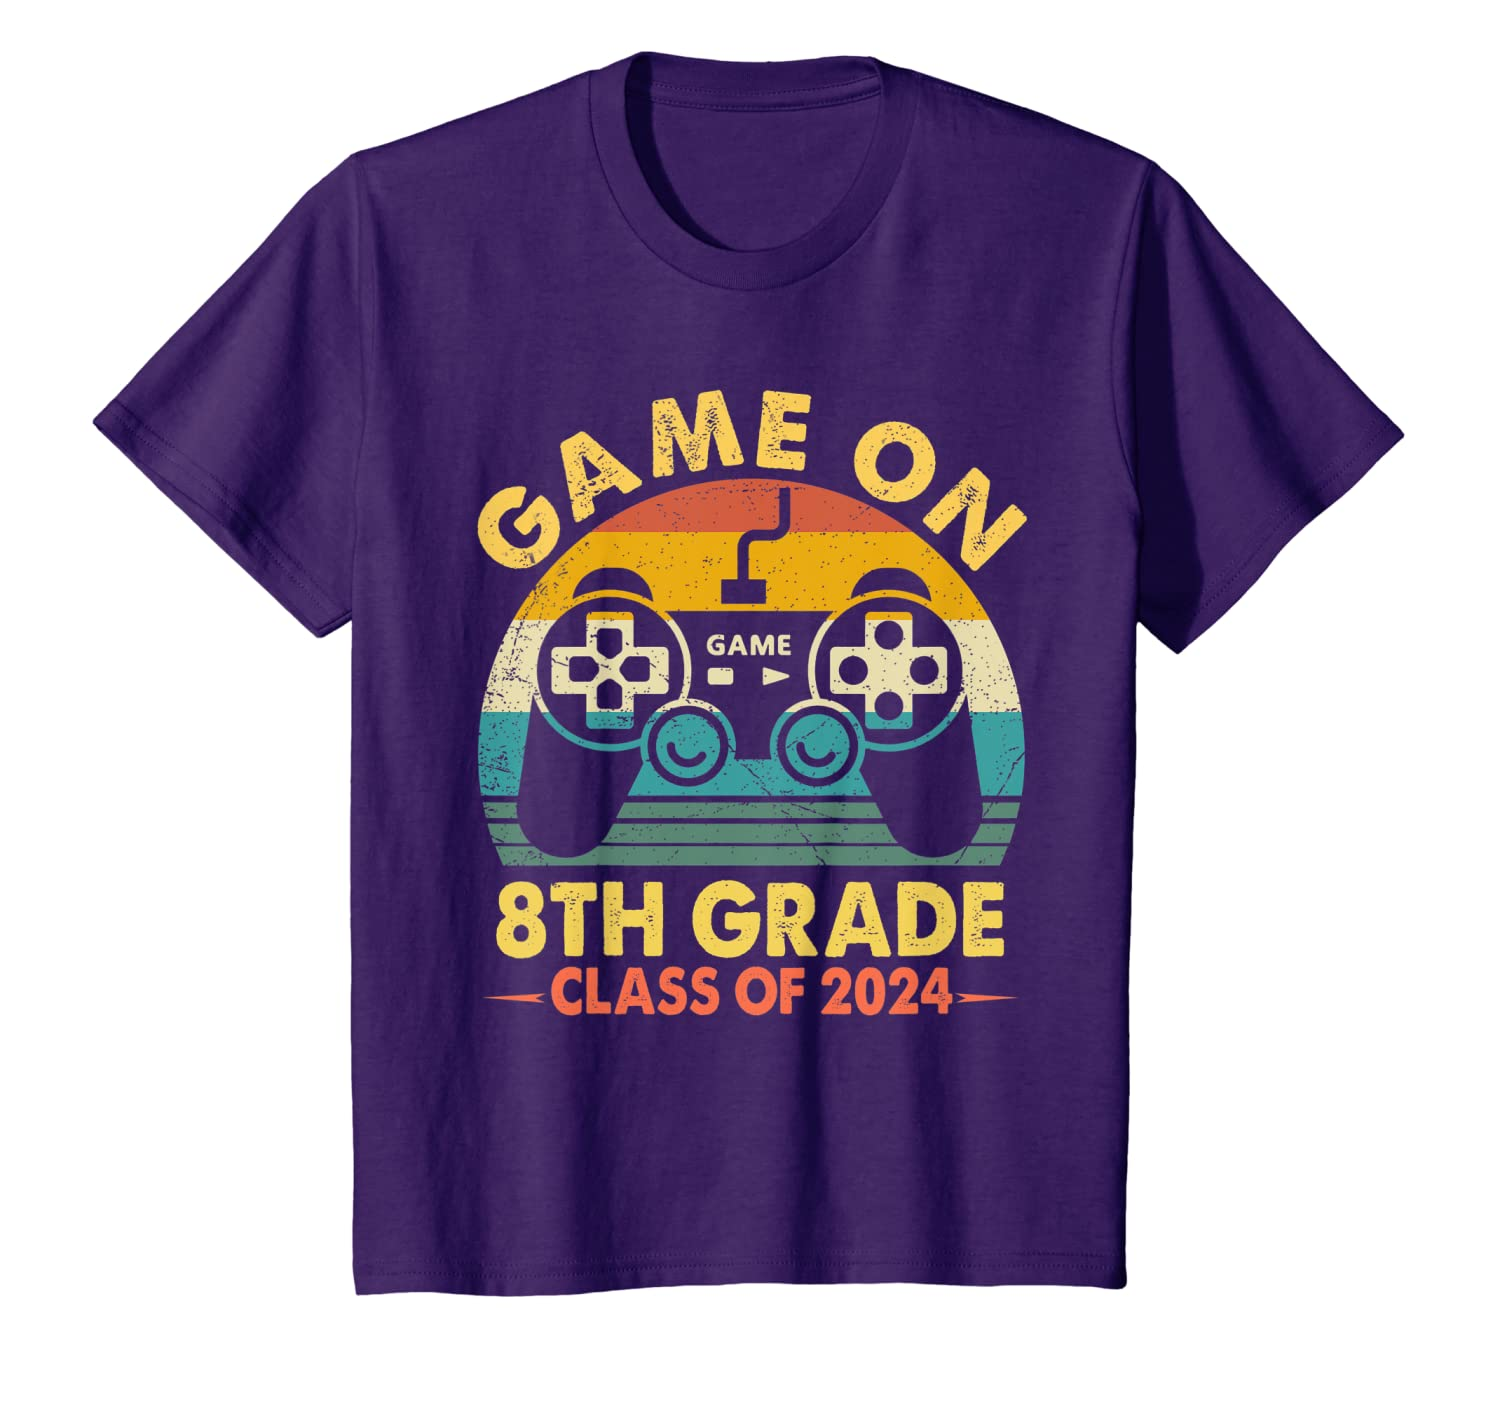 Amazon com: Game On 8th Grade Gamer Class of 2024 Vintage